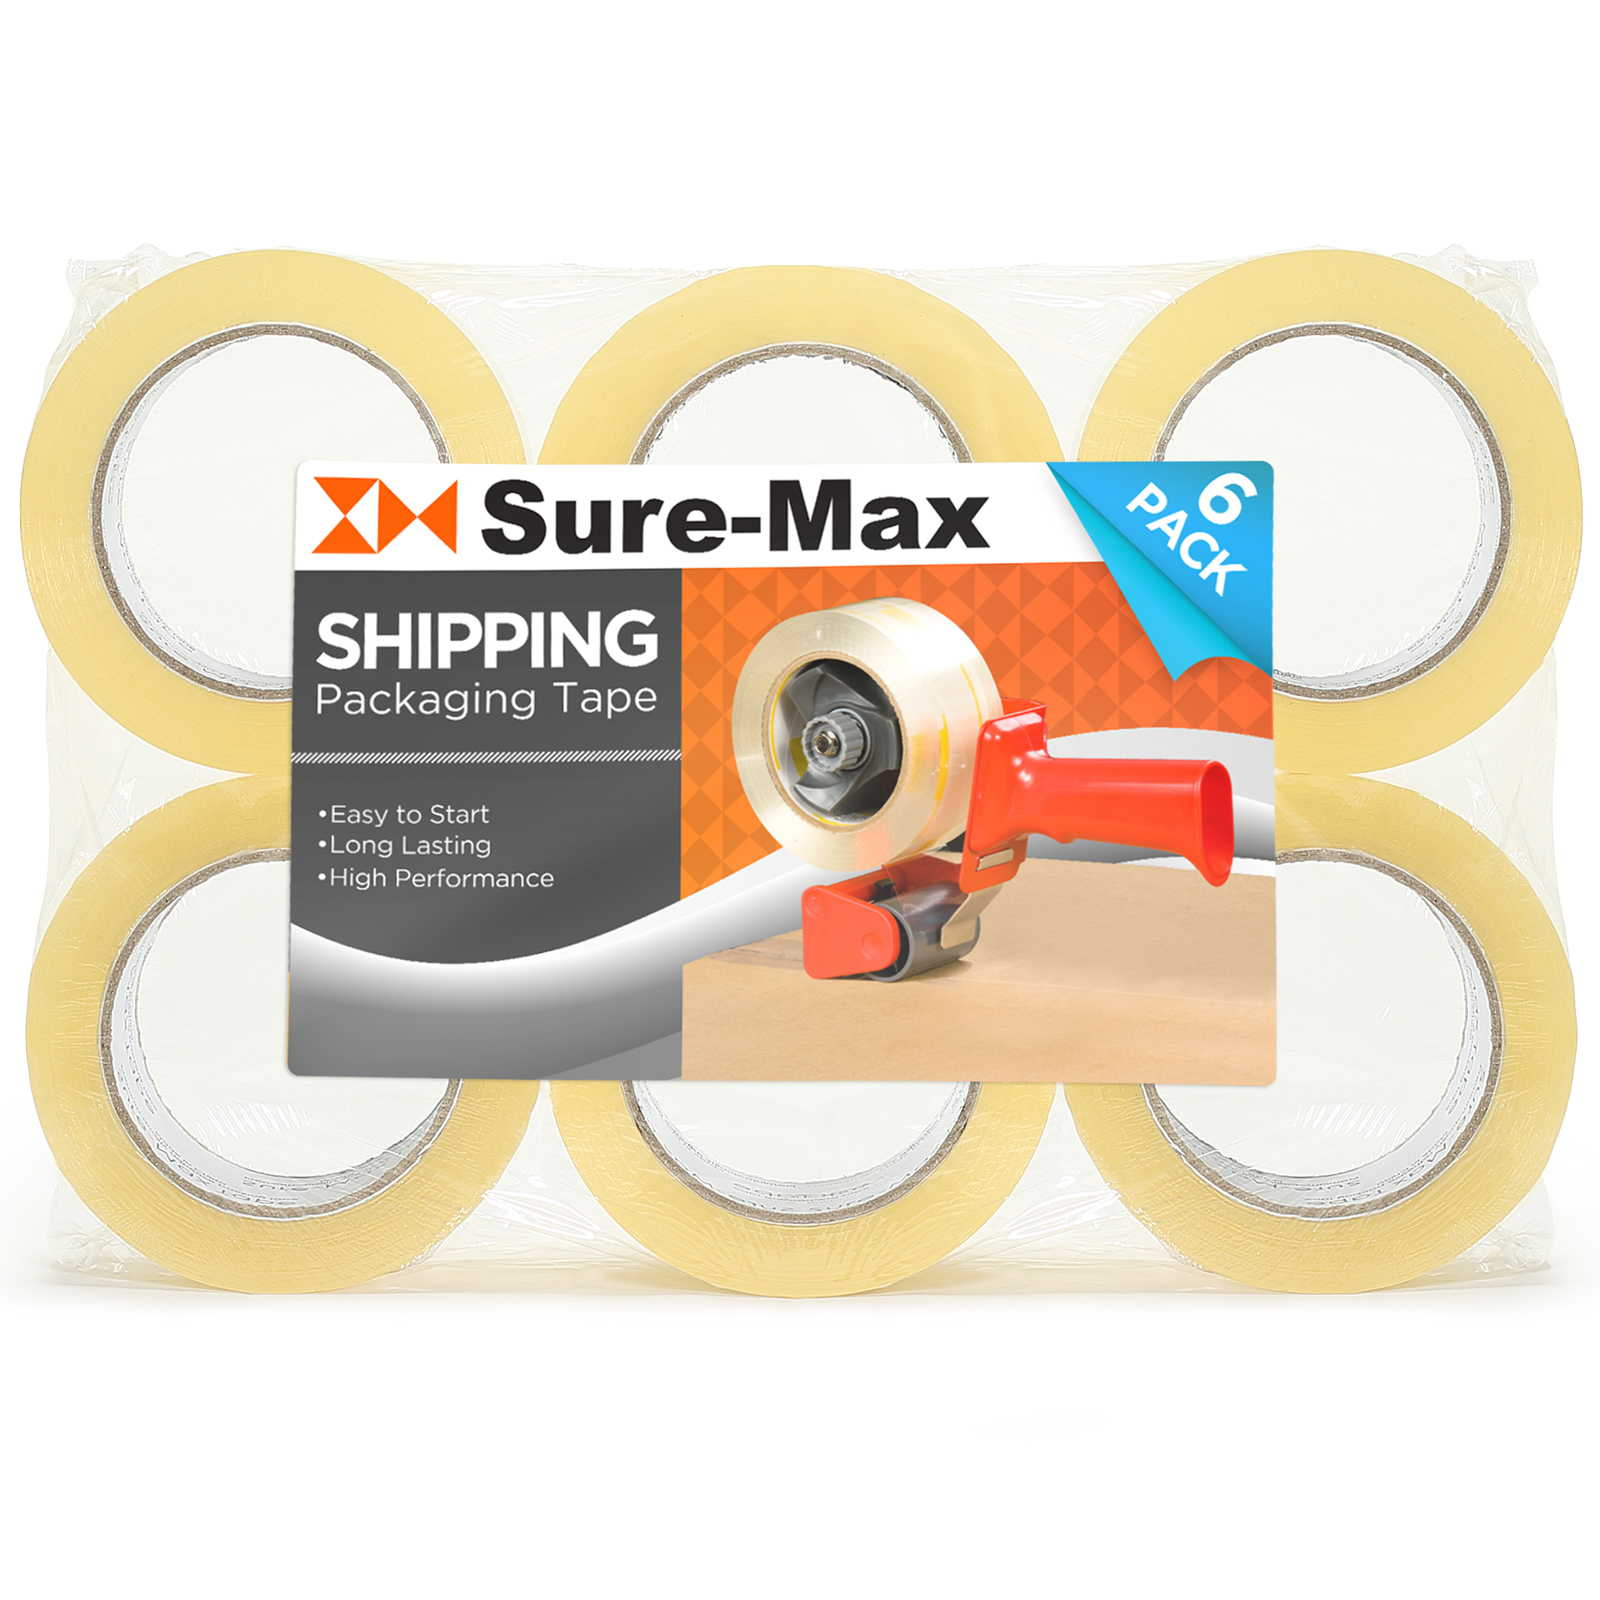 Sure-Max Premium Carton Packing Tape 2.0 mil 330 Feet (110 yards) - Clear - 4 Cases